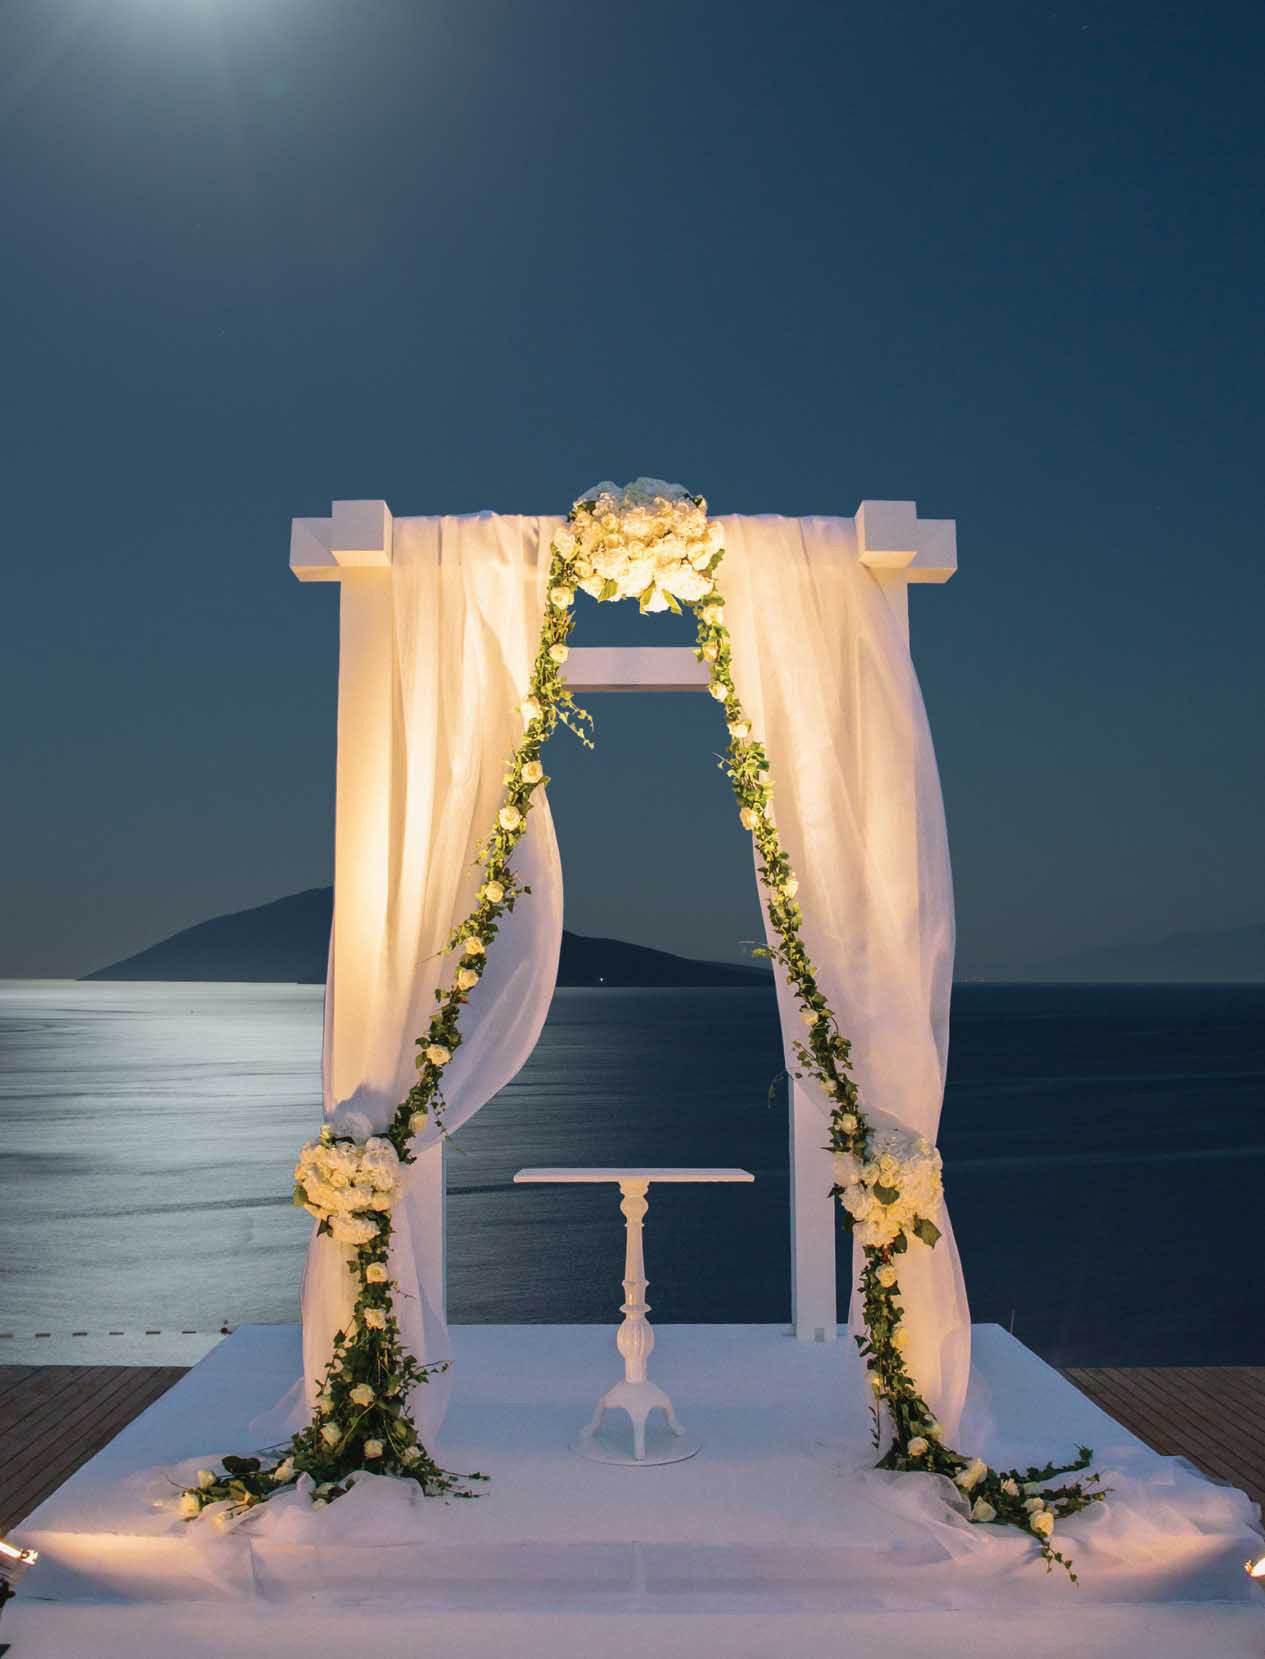 a4da9a6e9fde6e23 org - Tie the knot in the blissful Bodrum beside the turquoise Aegean Sea